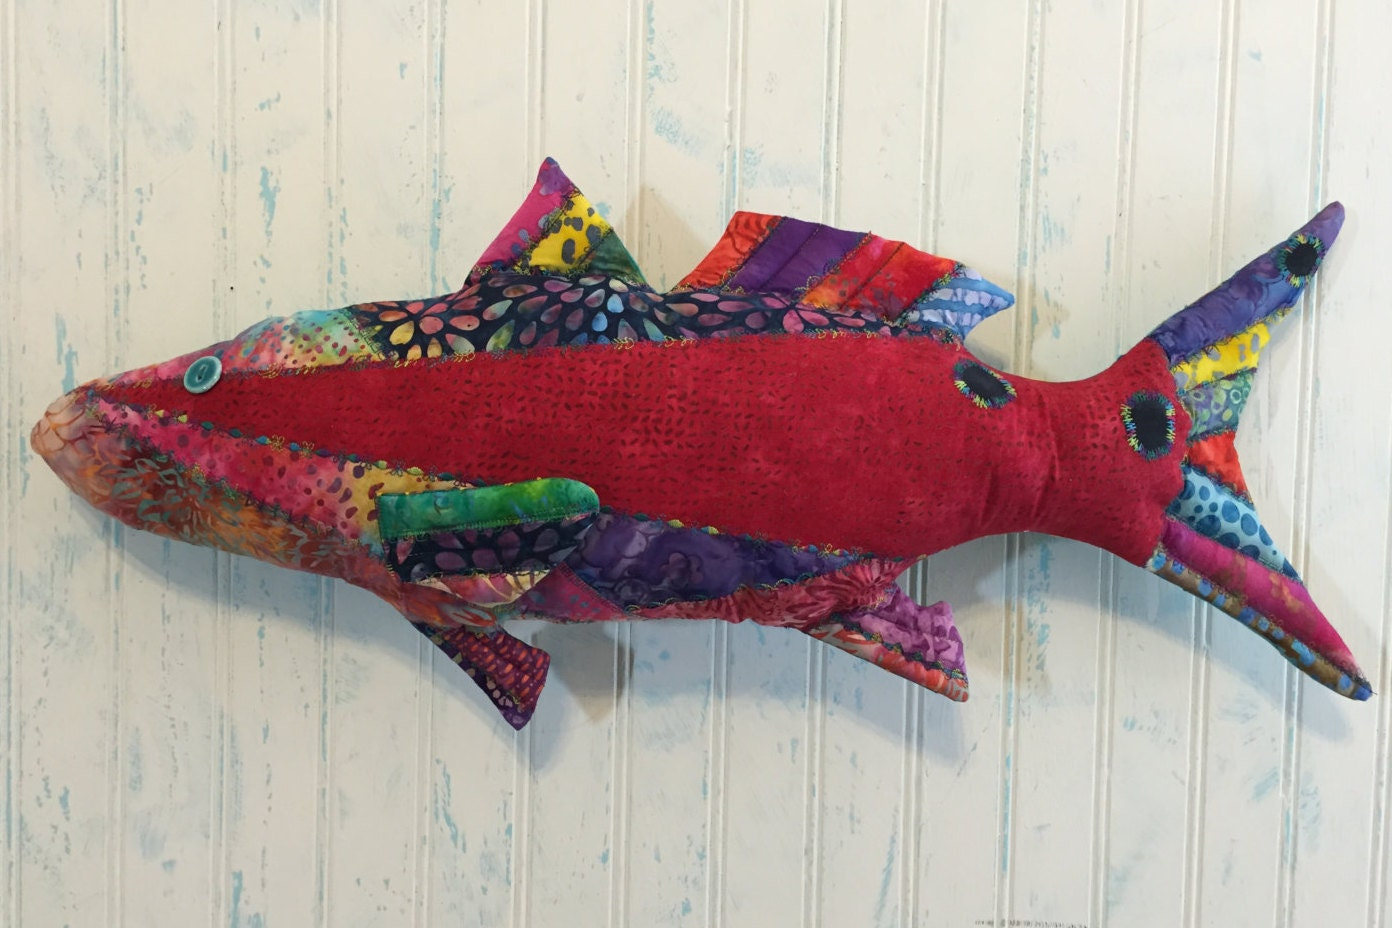 Pillow Fish Art Redfish Rf015 Is A Large 26x11